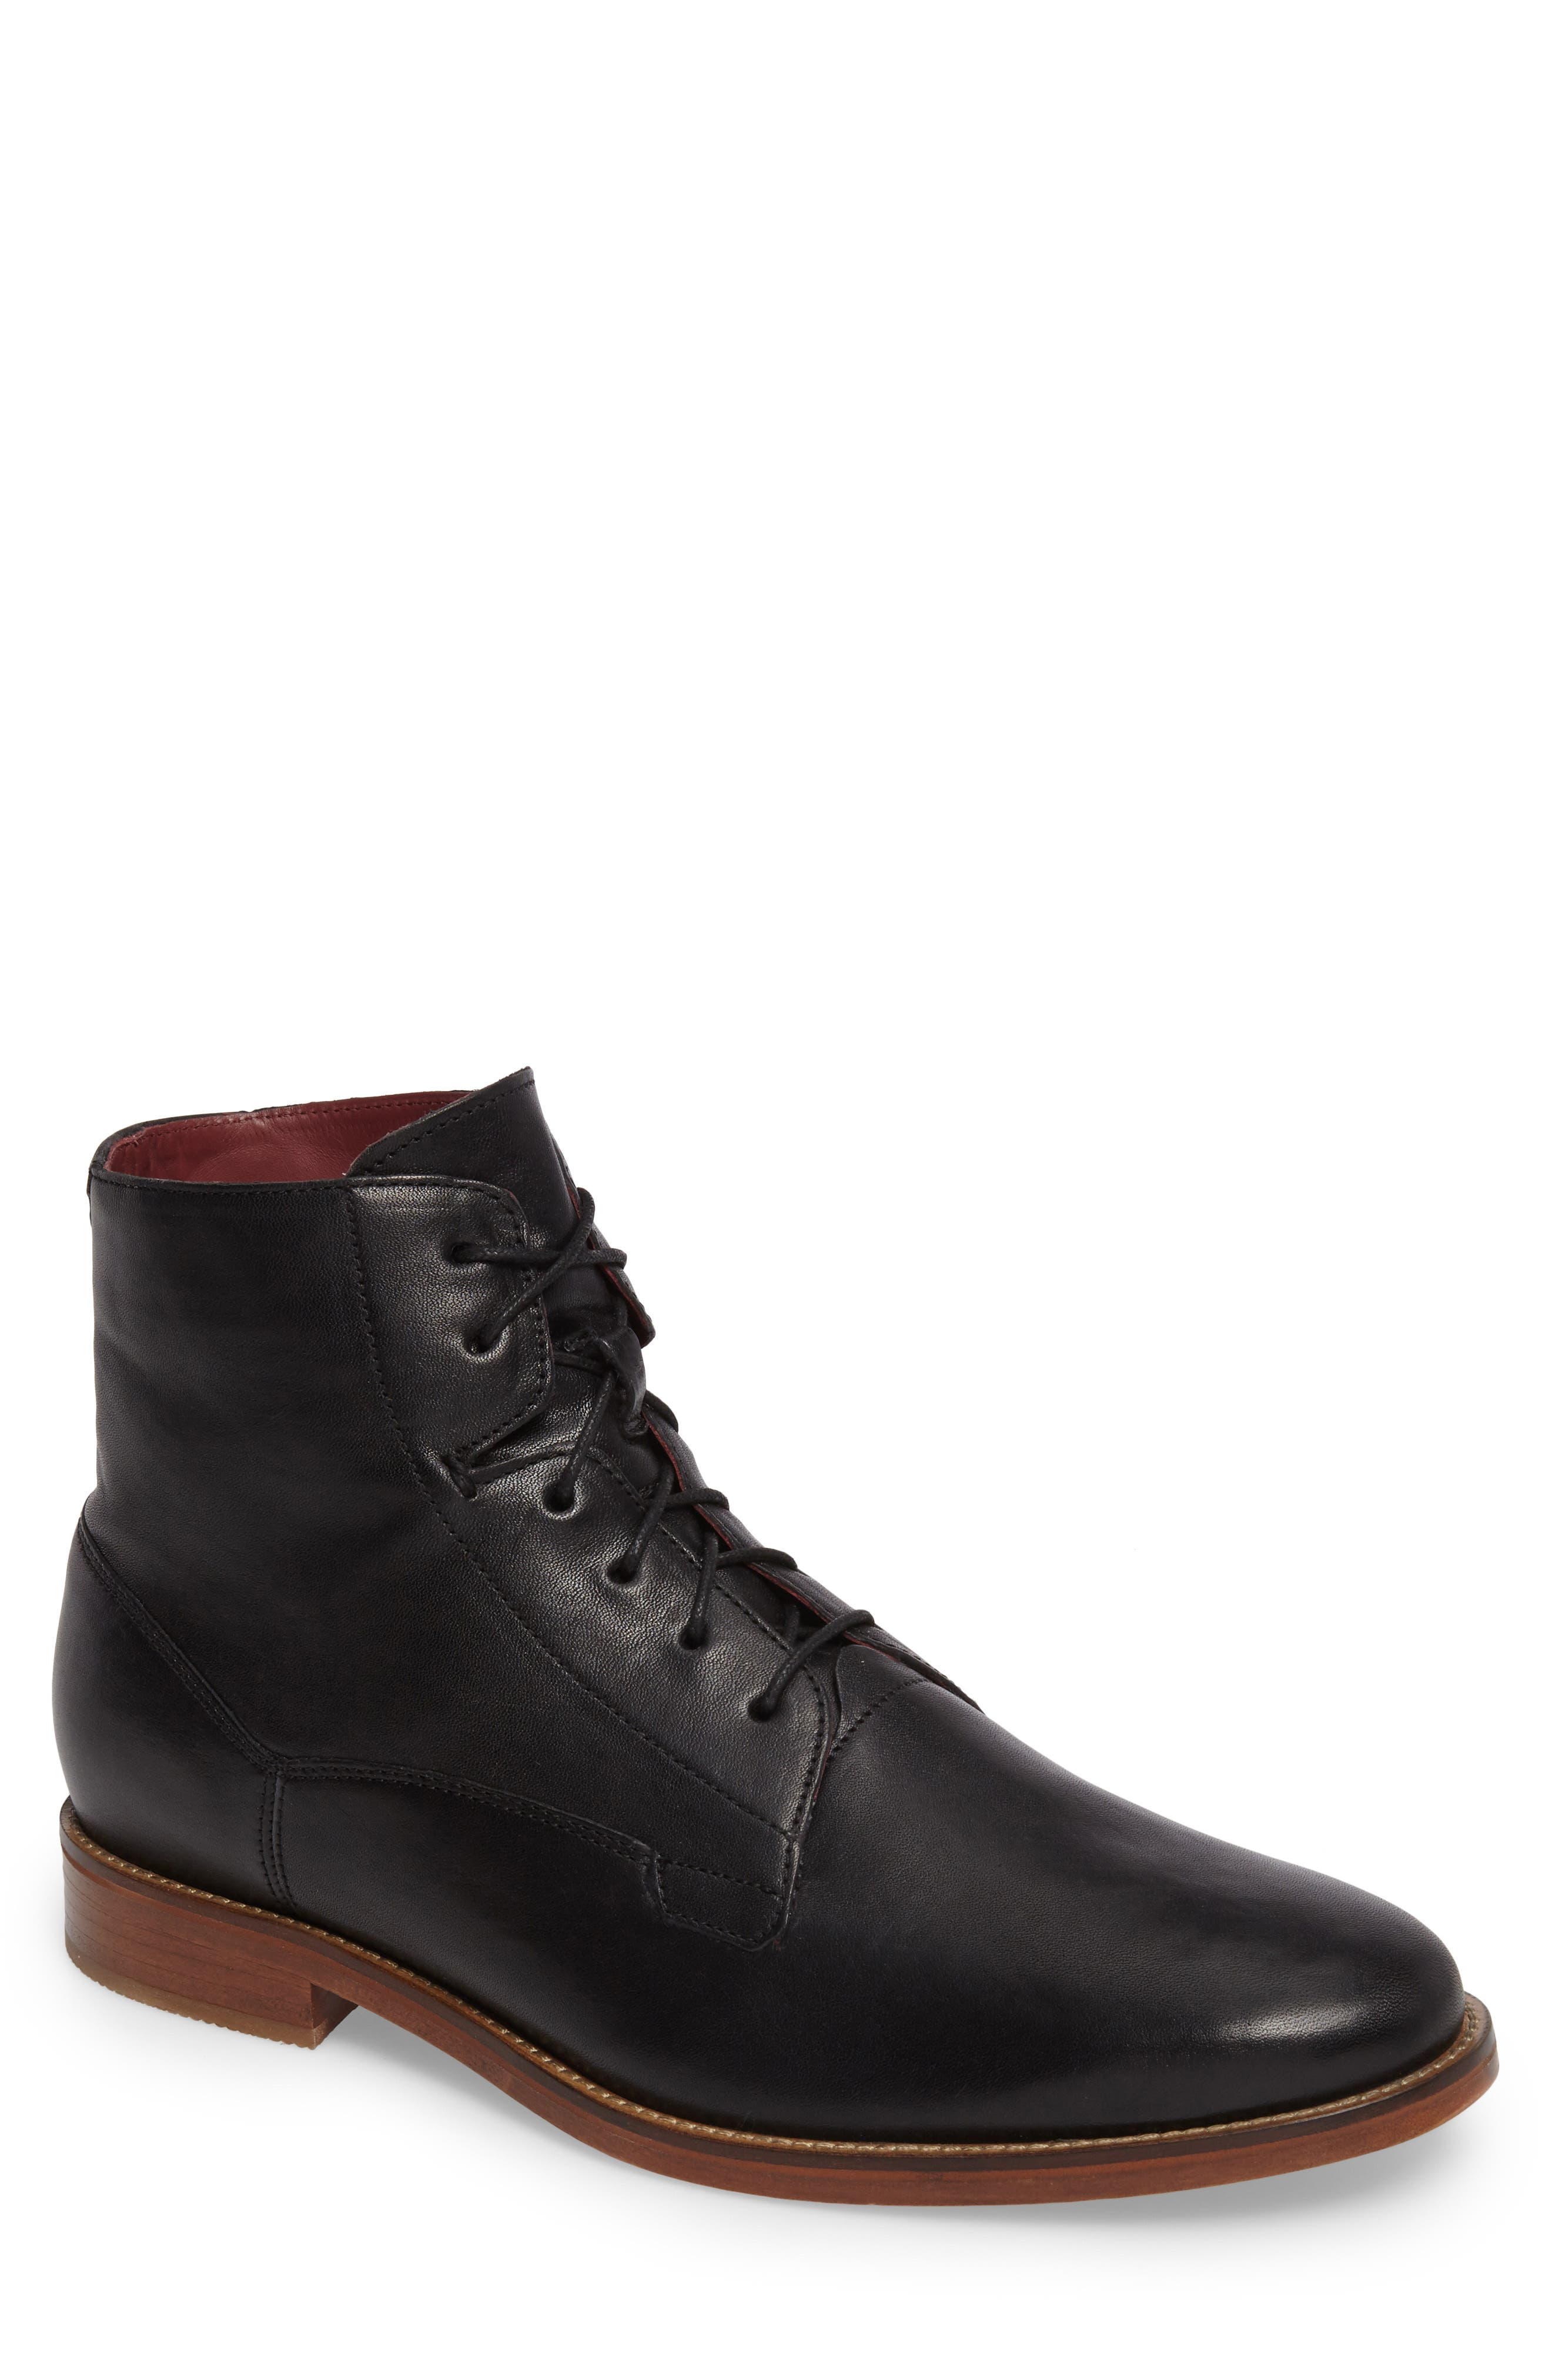 J SHOES 'Fellow' Boot